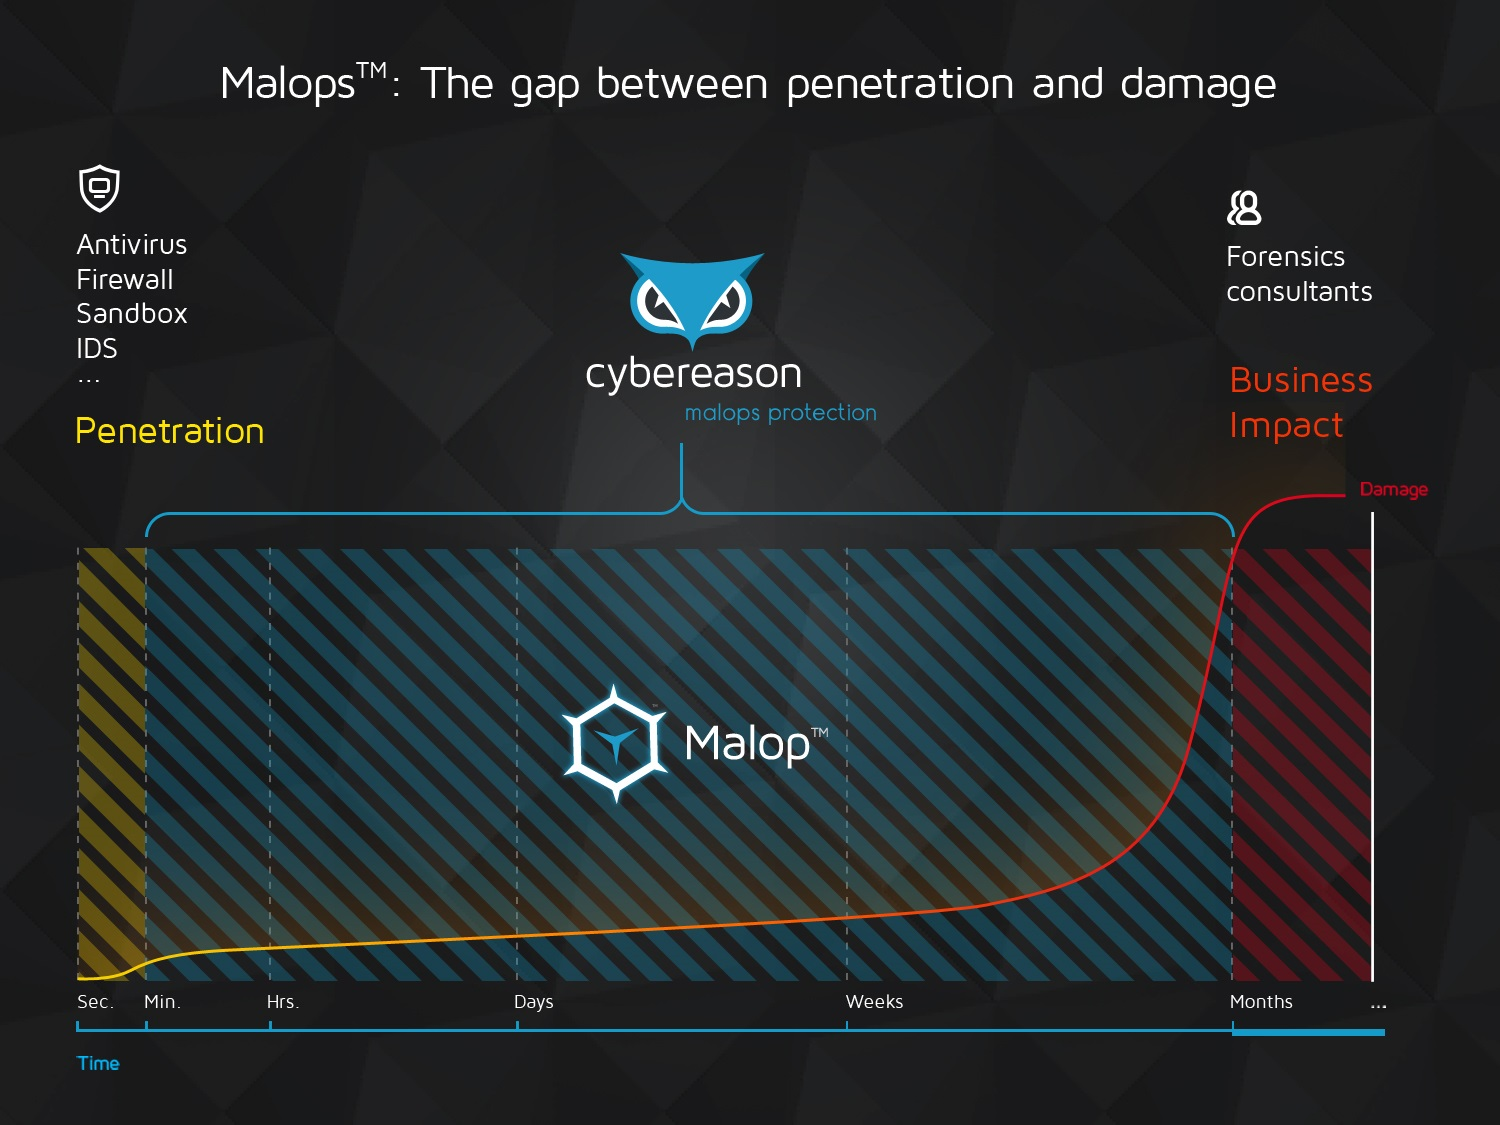 Cybereason_Malops--the gap between penetration and damage